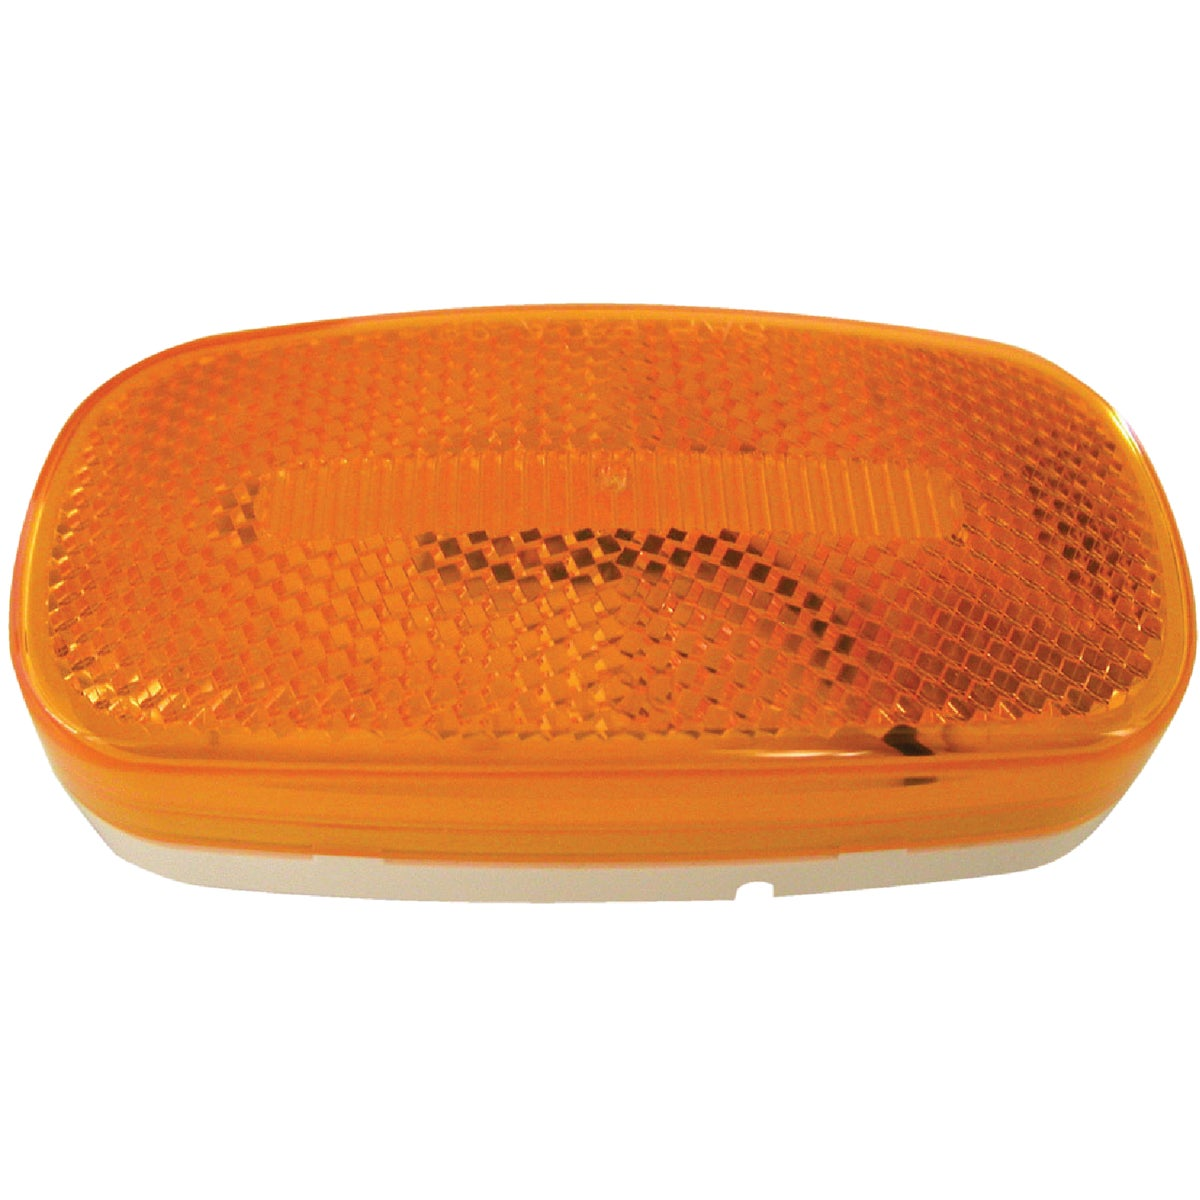 LED AMB OVAL CLEAR LIGHT - V180A by Peterson Mfg Co